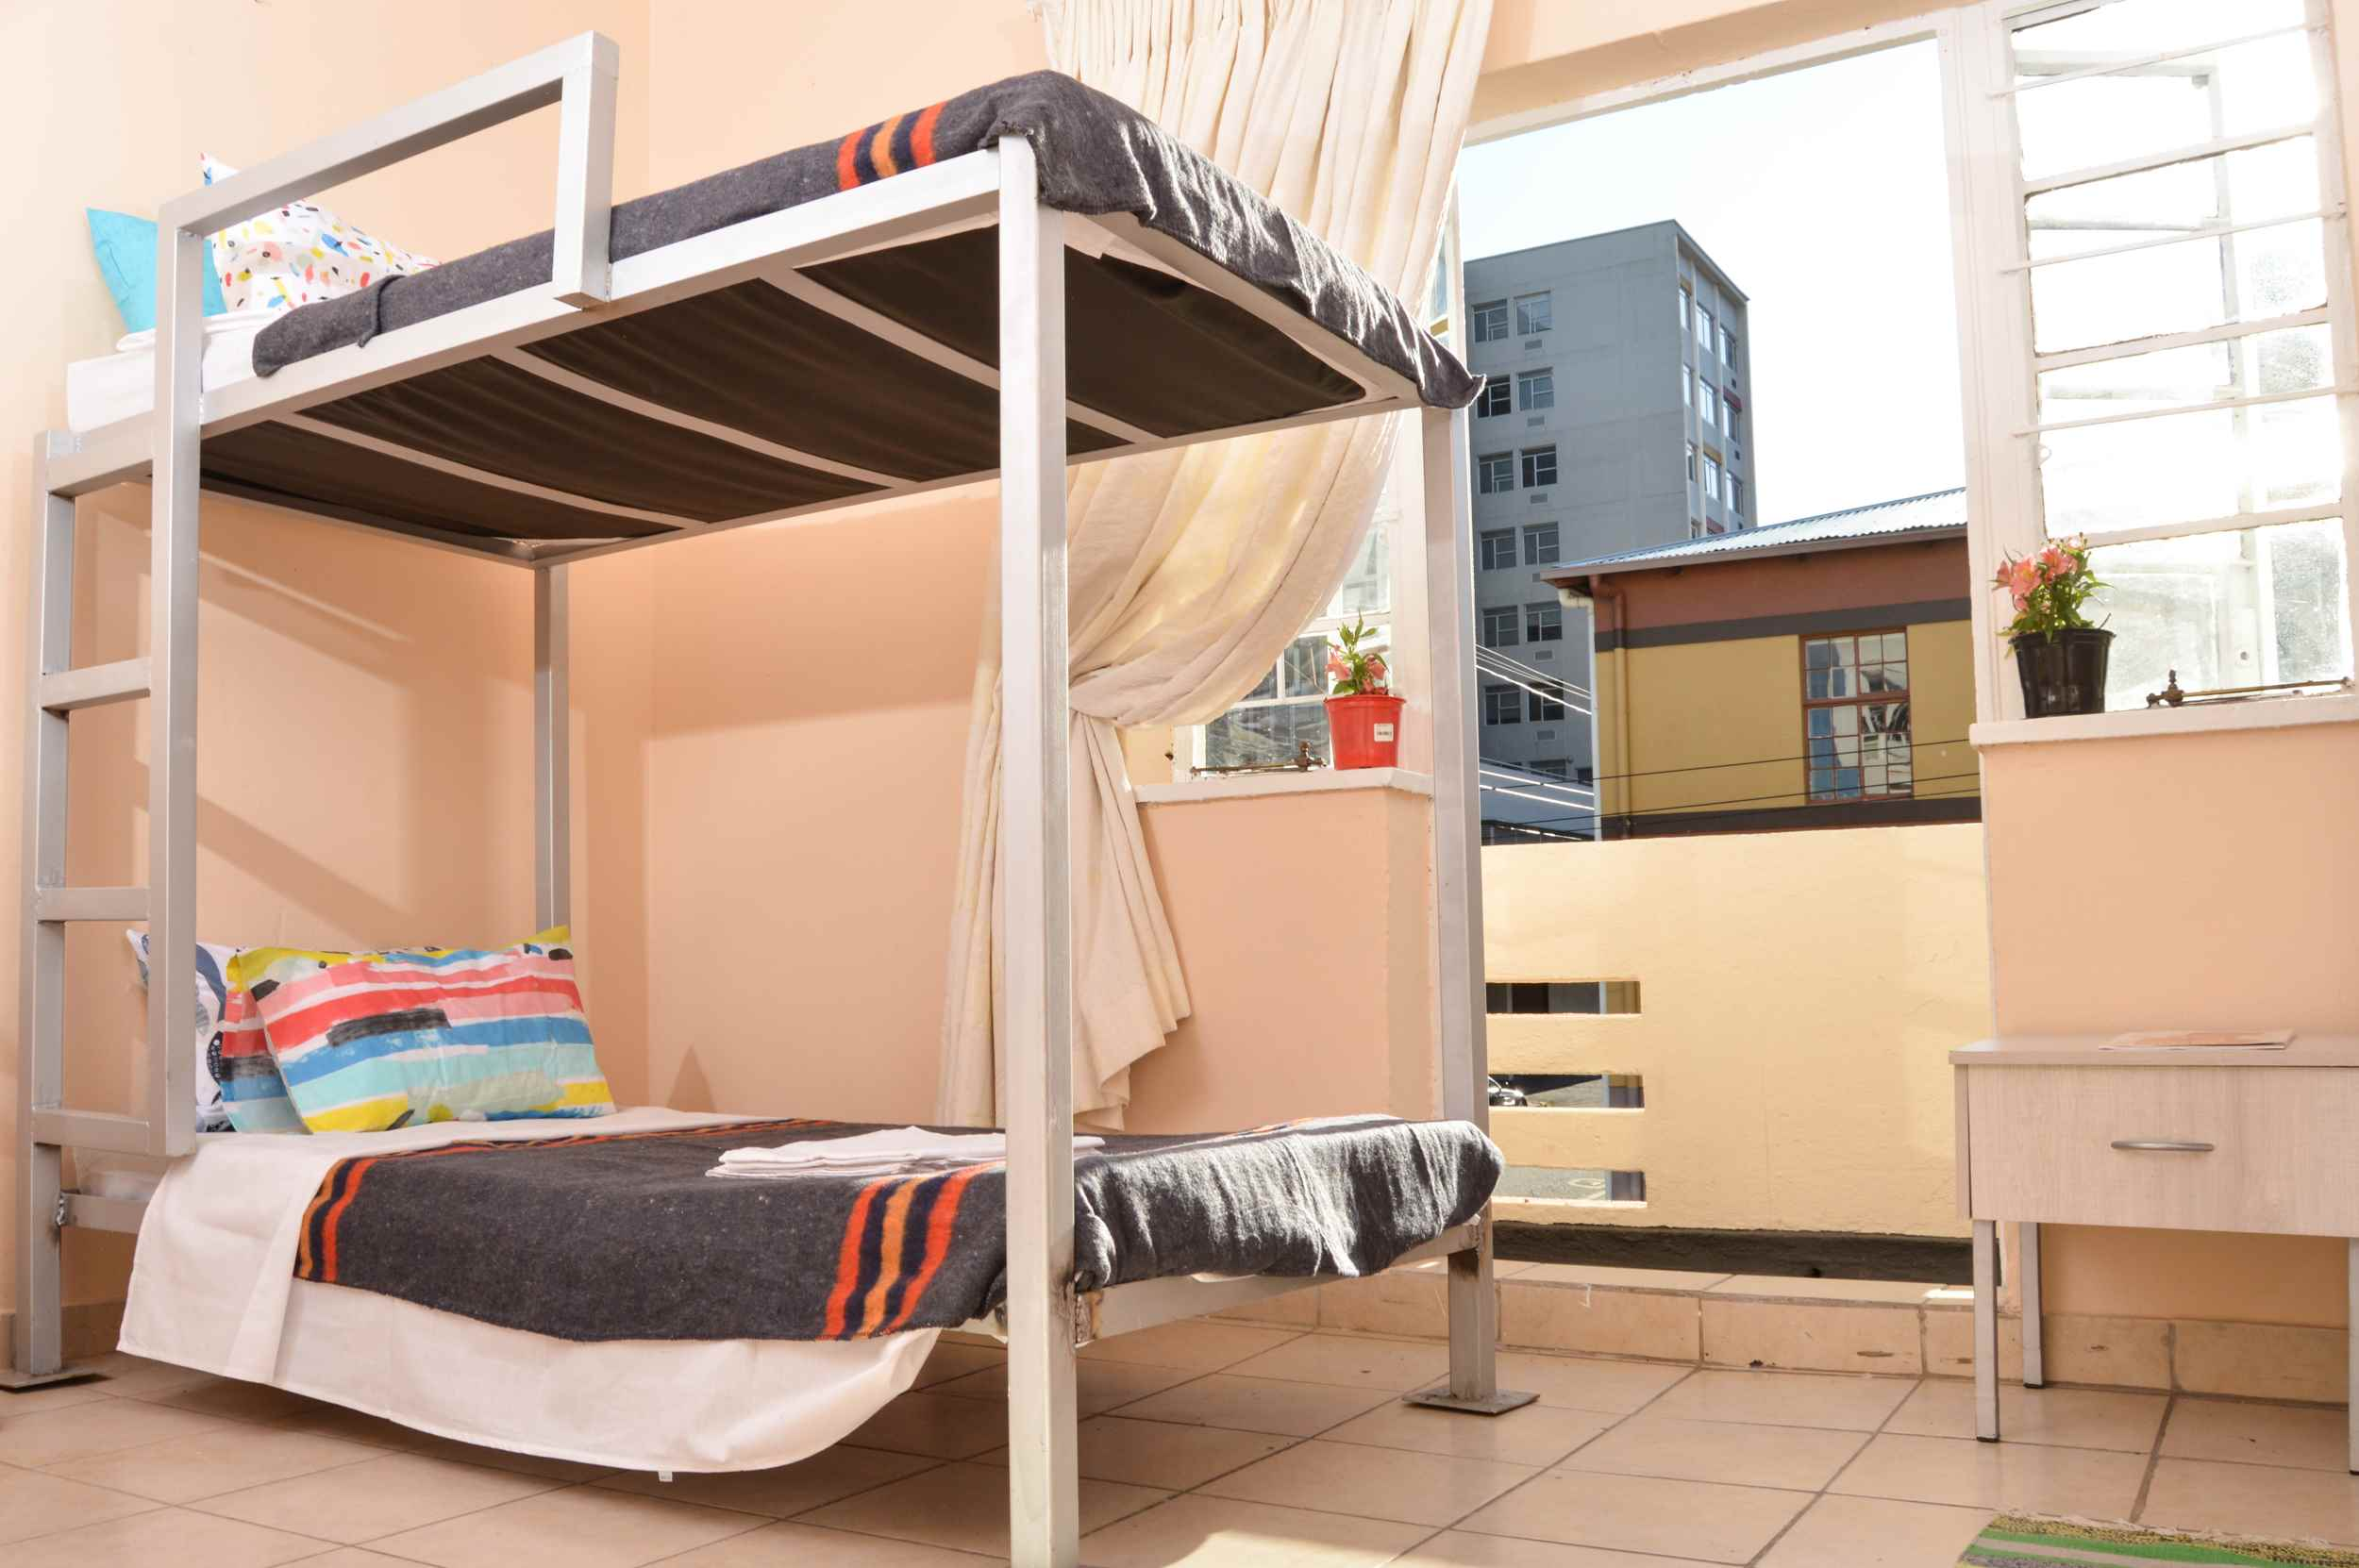 HOSTEL - Urban BackPackers